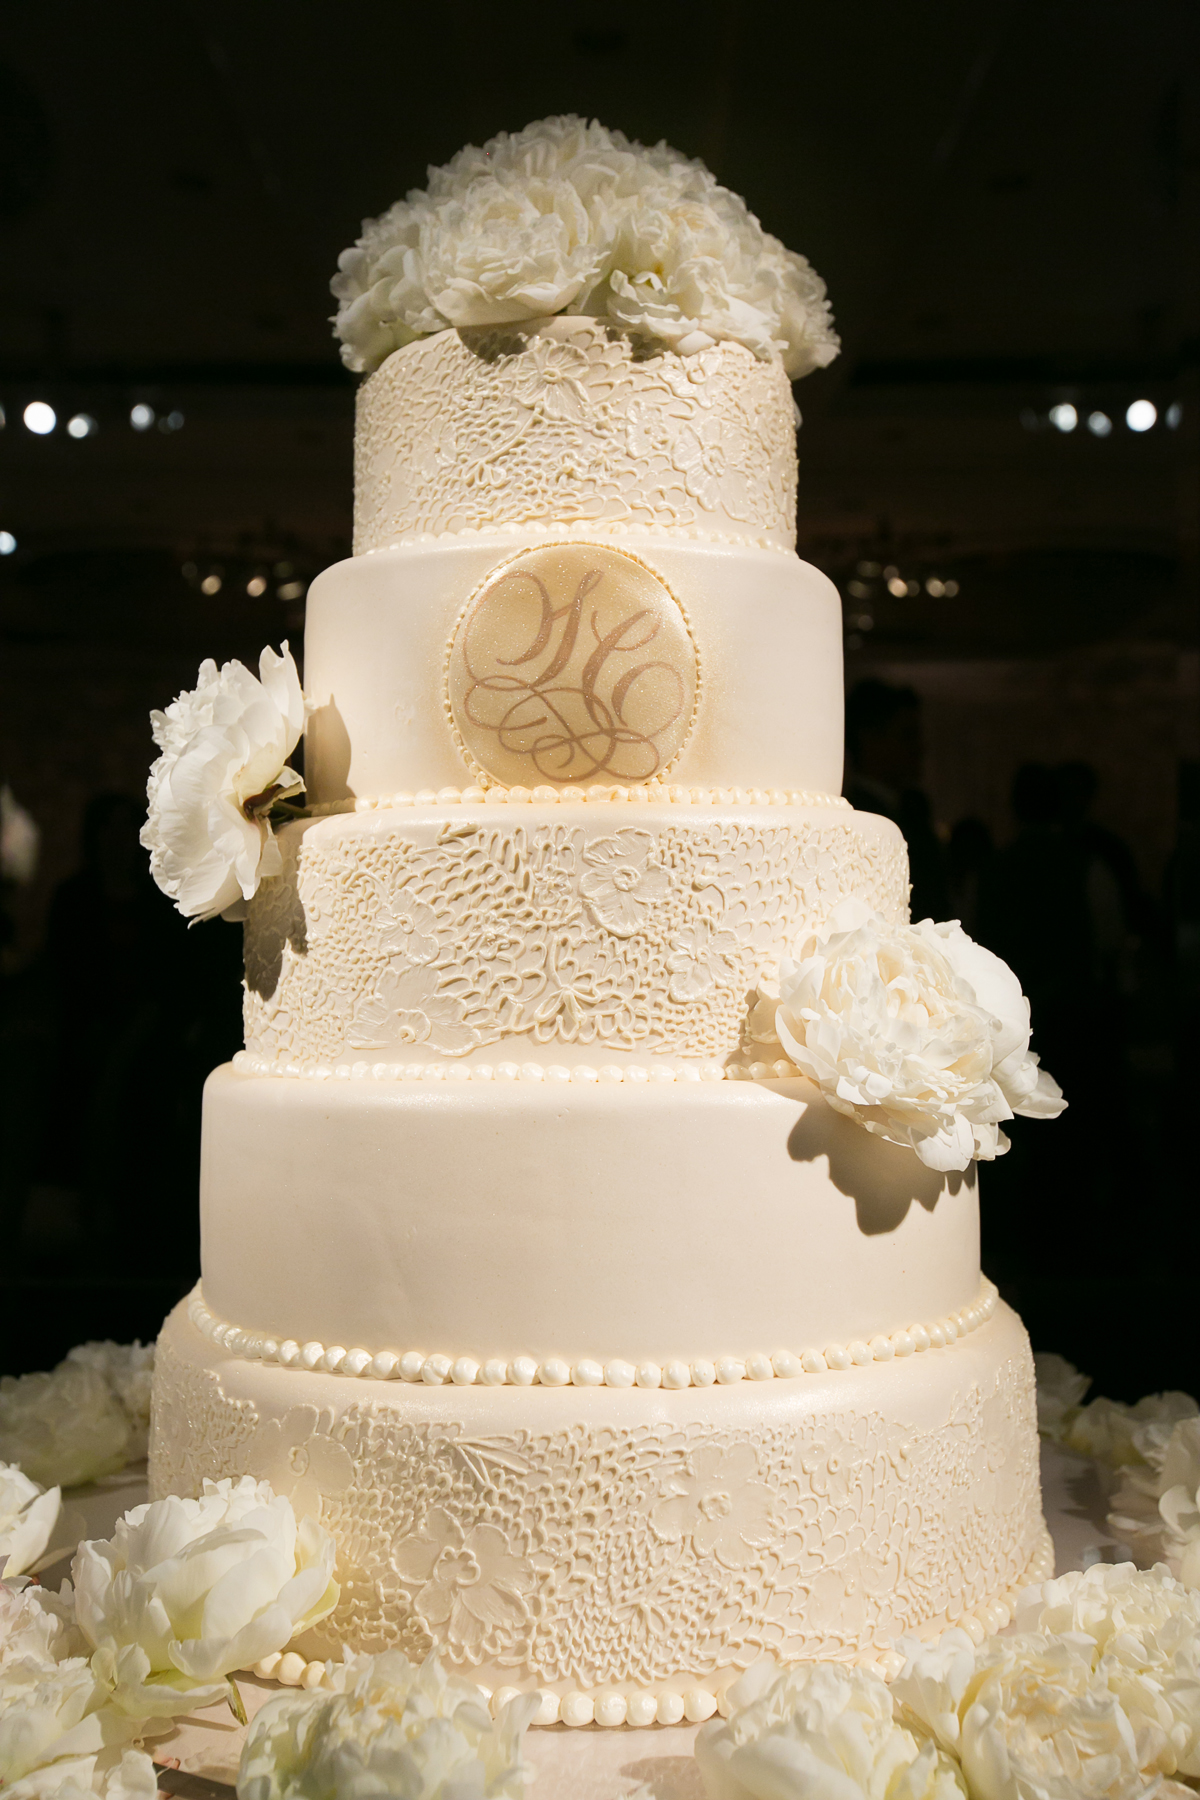 White wedding cake with lace pattern